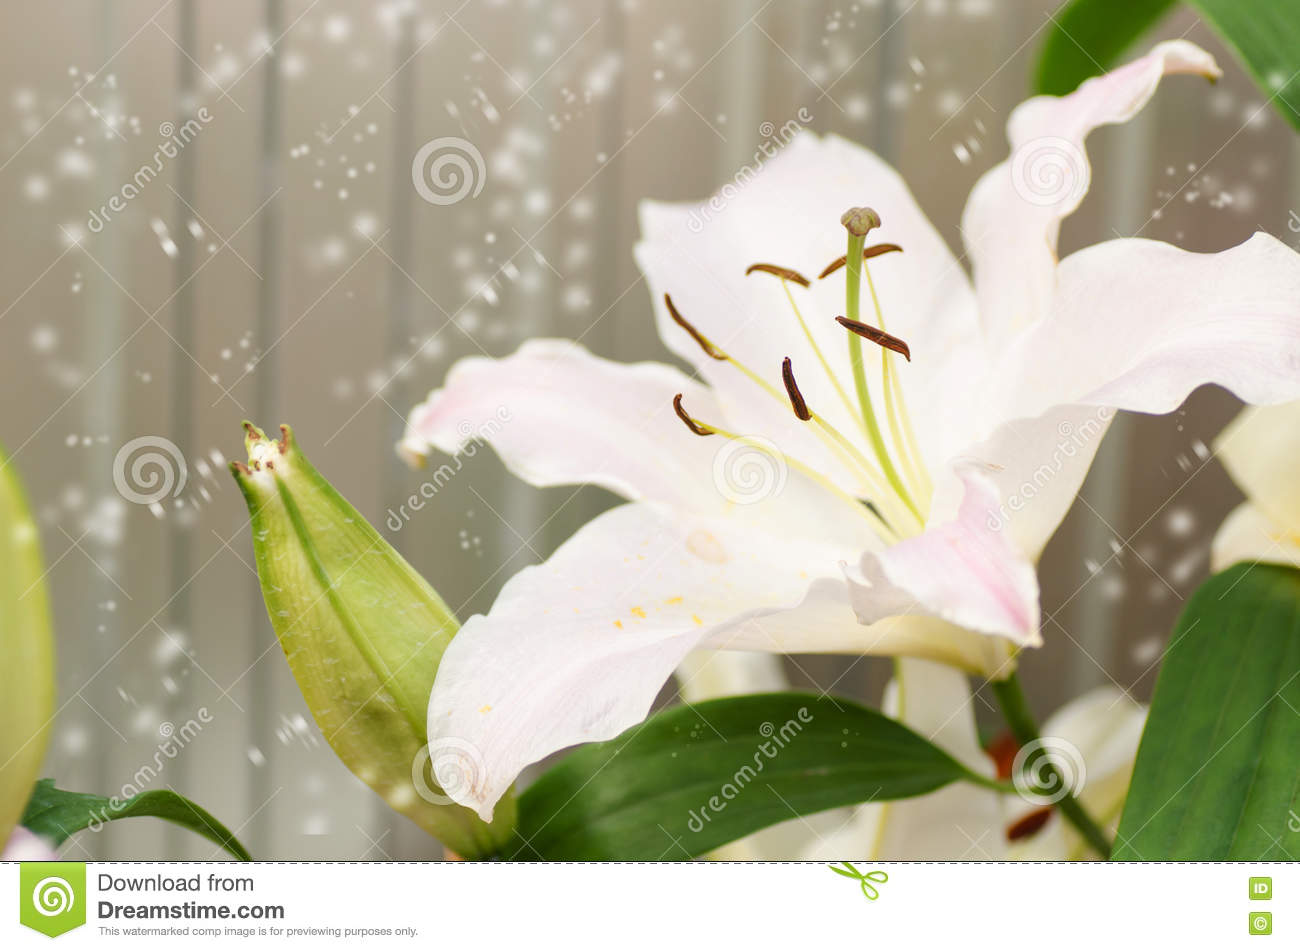 Lily flower stock image image of flora season decoration 80313609 winter seasonwhite lily flower in a garden with snowflower background in cold weather izmirmasajfo